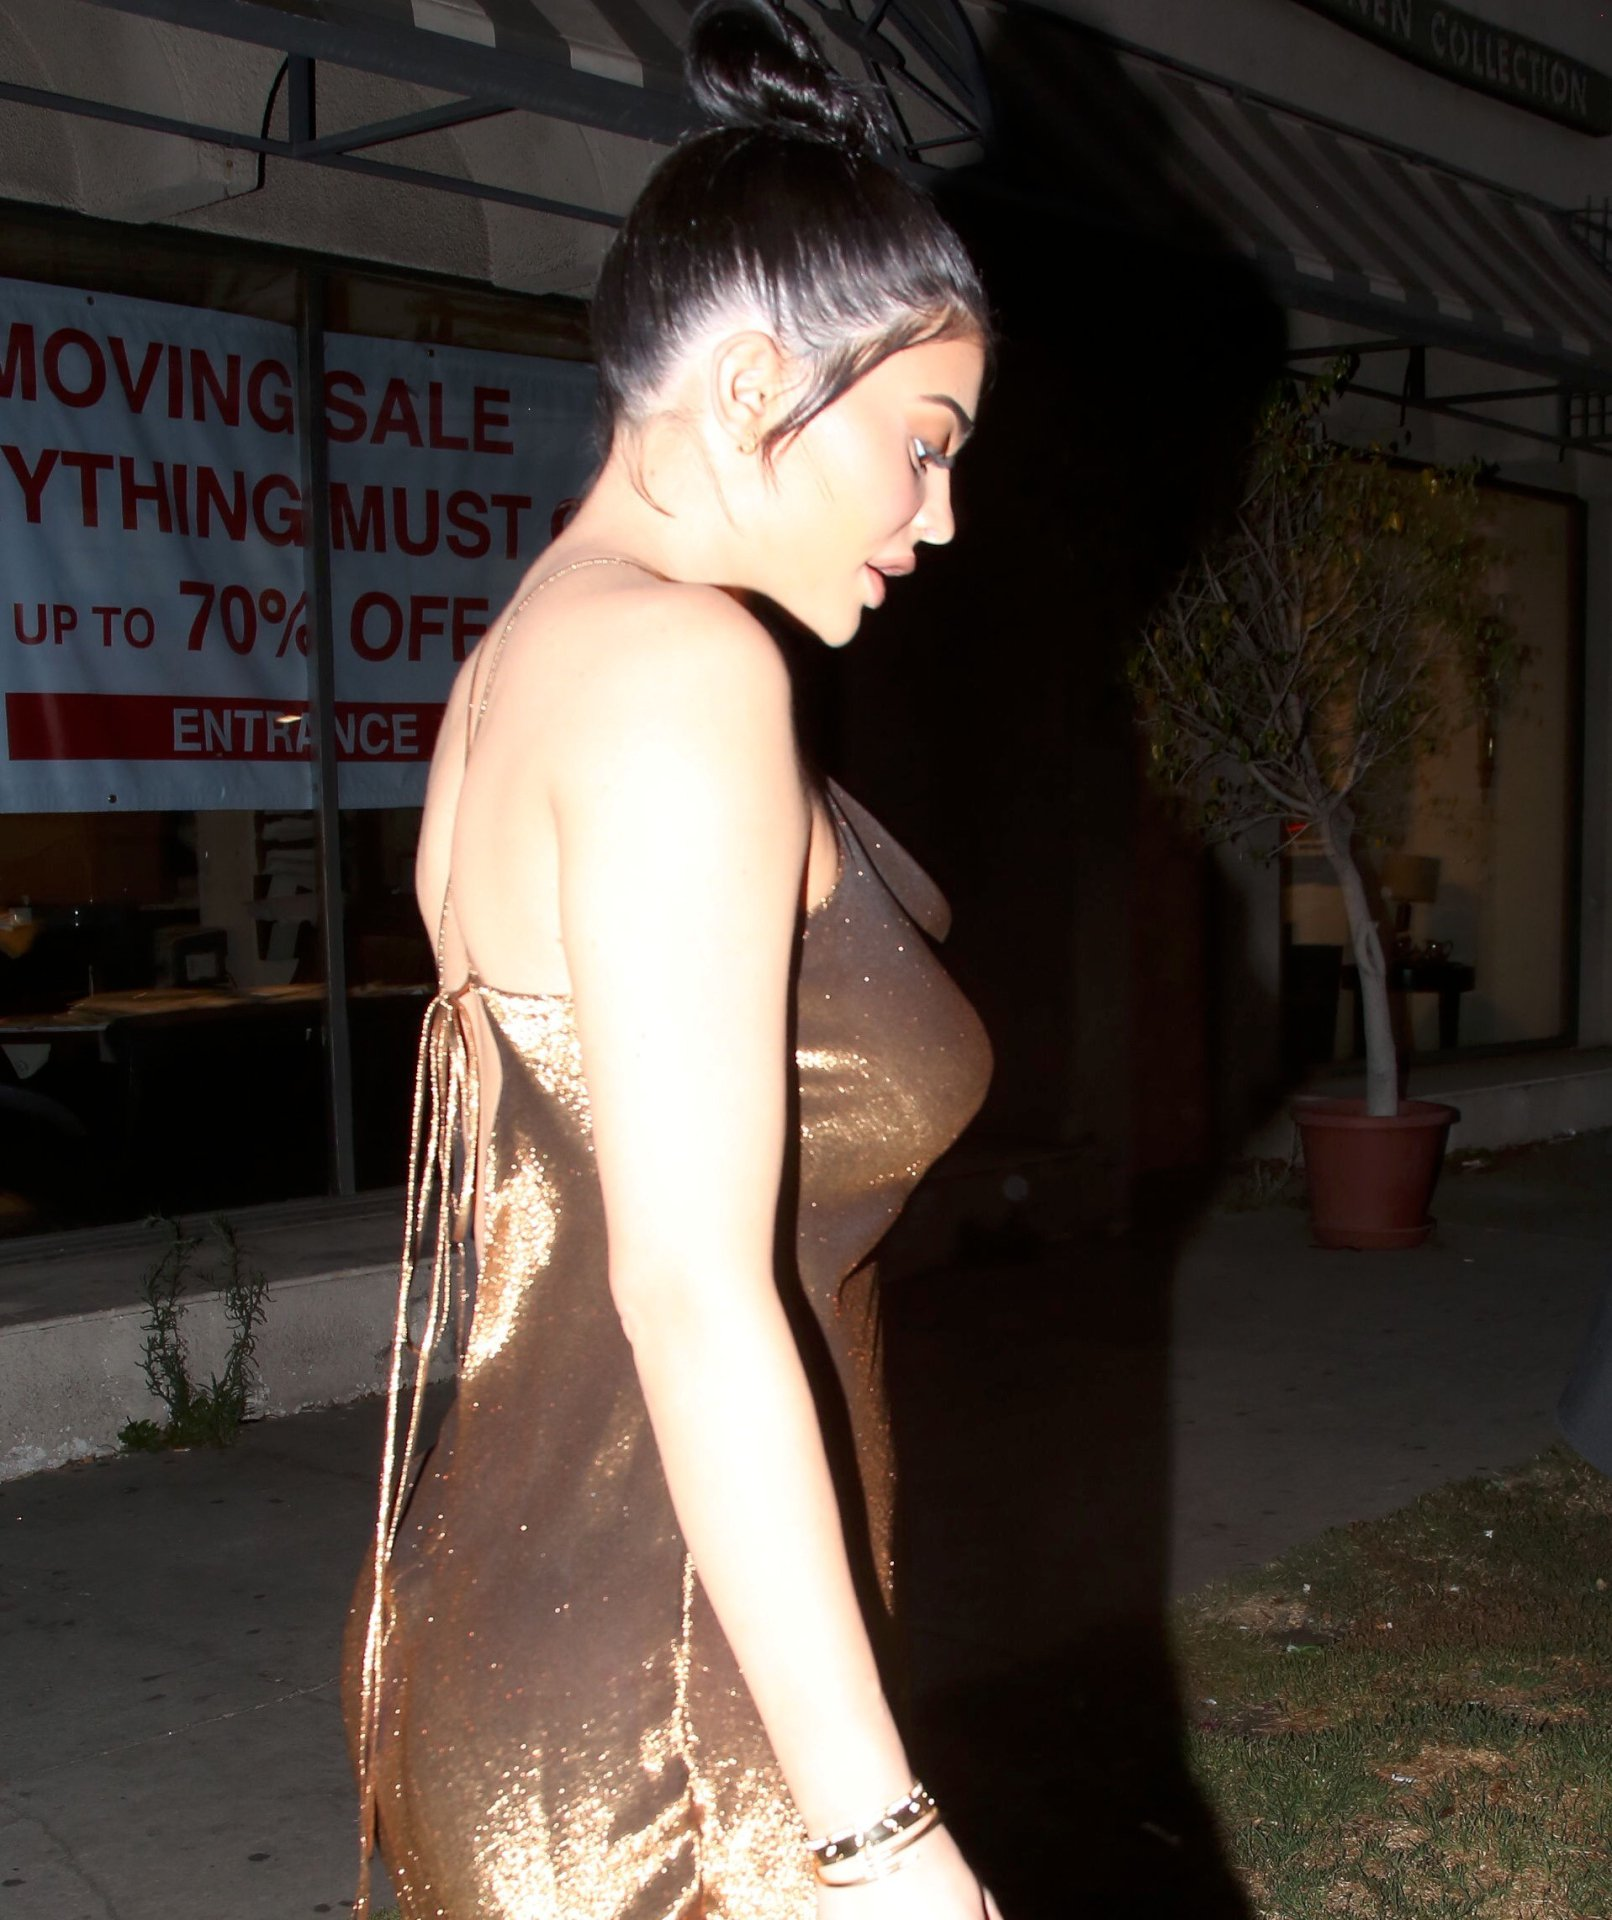 Kylie Jenner Shows Her Nips In A Wet Tshirt Video